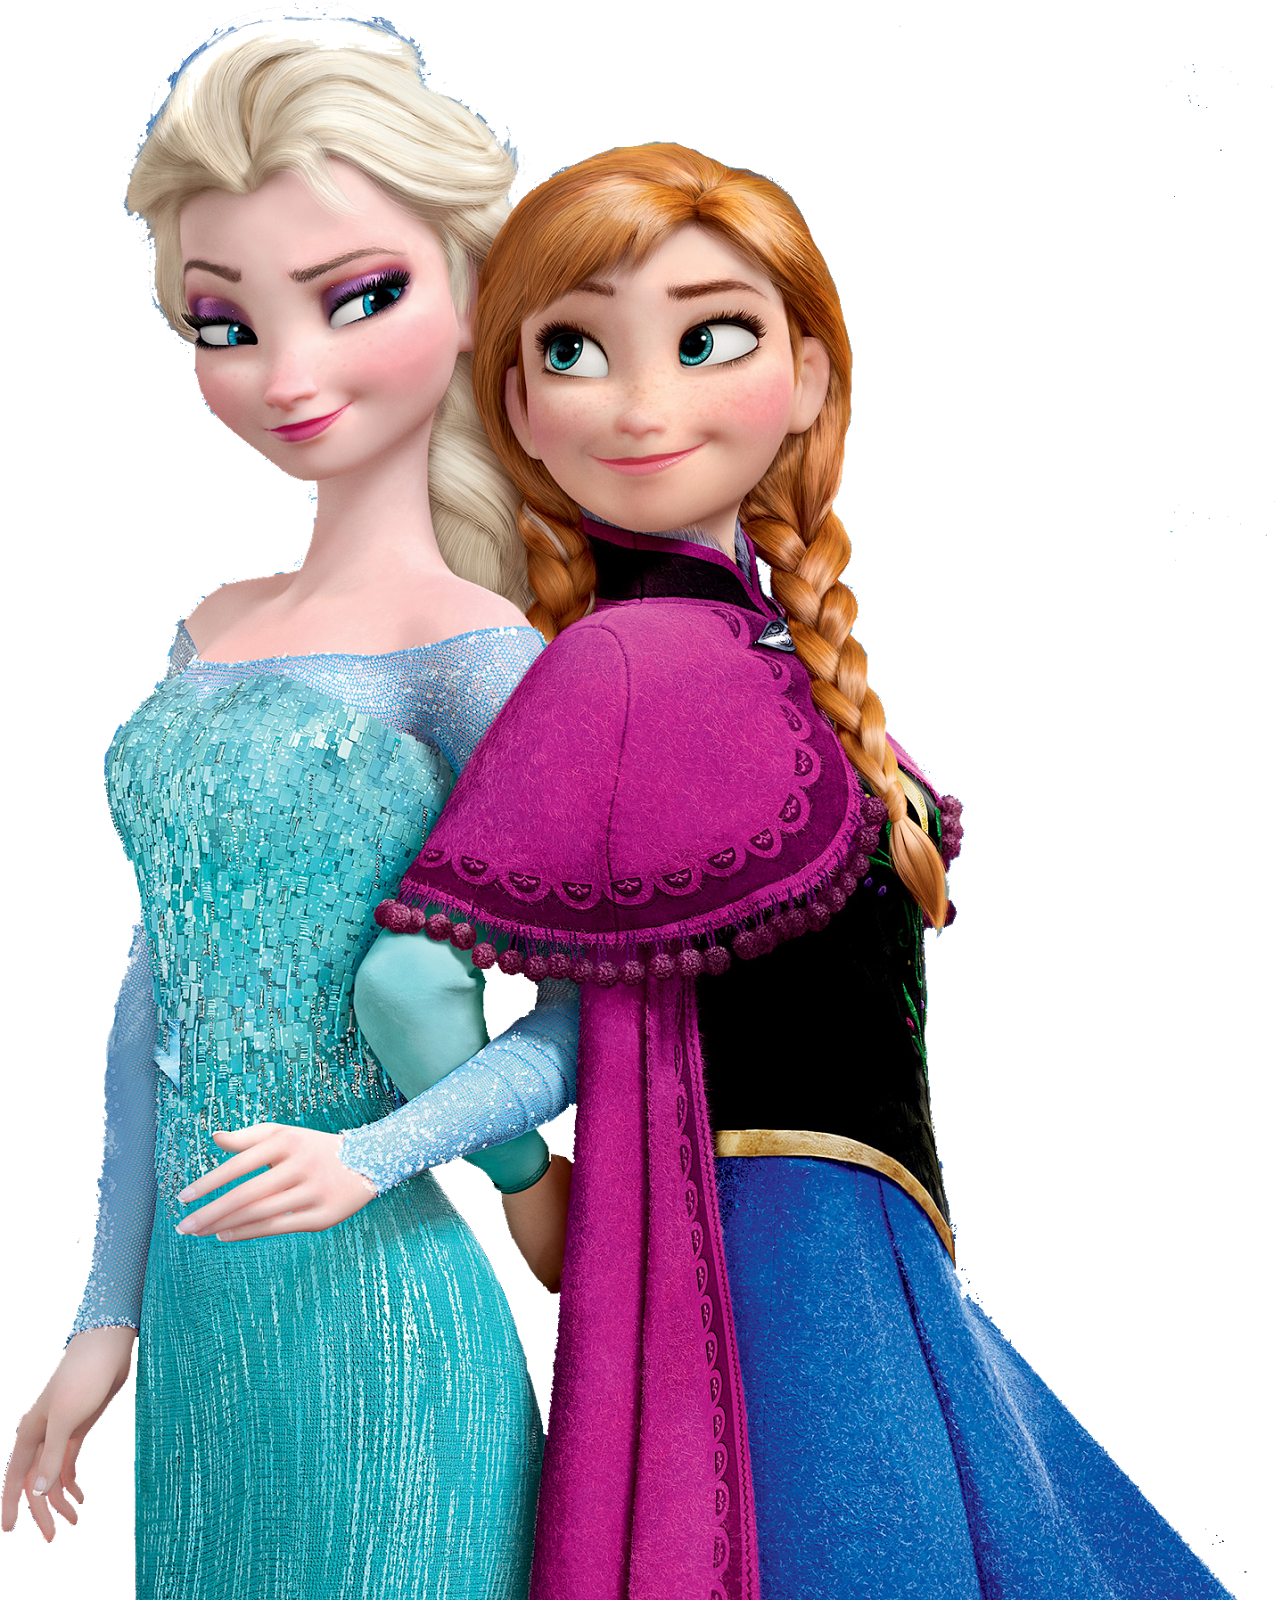 frozen anna and elsa png picture. Black Bedroom Furniture Sets. Home Design Ideas